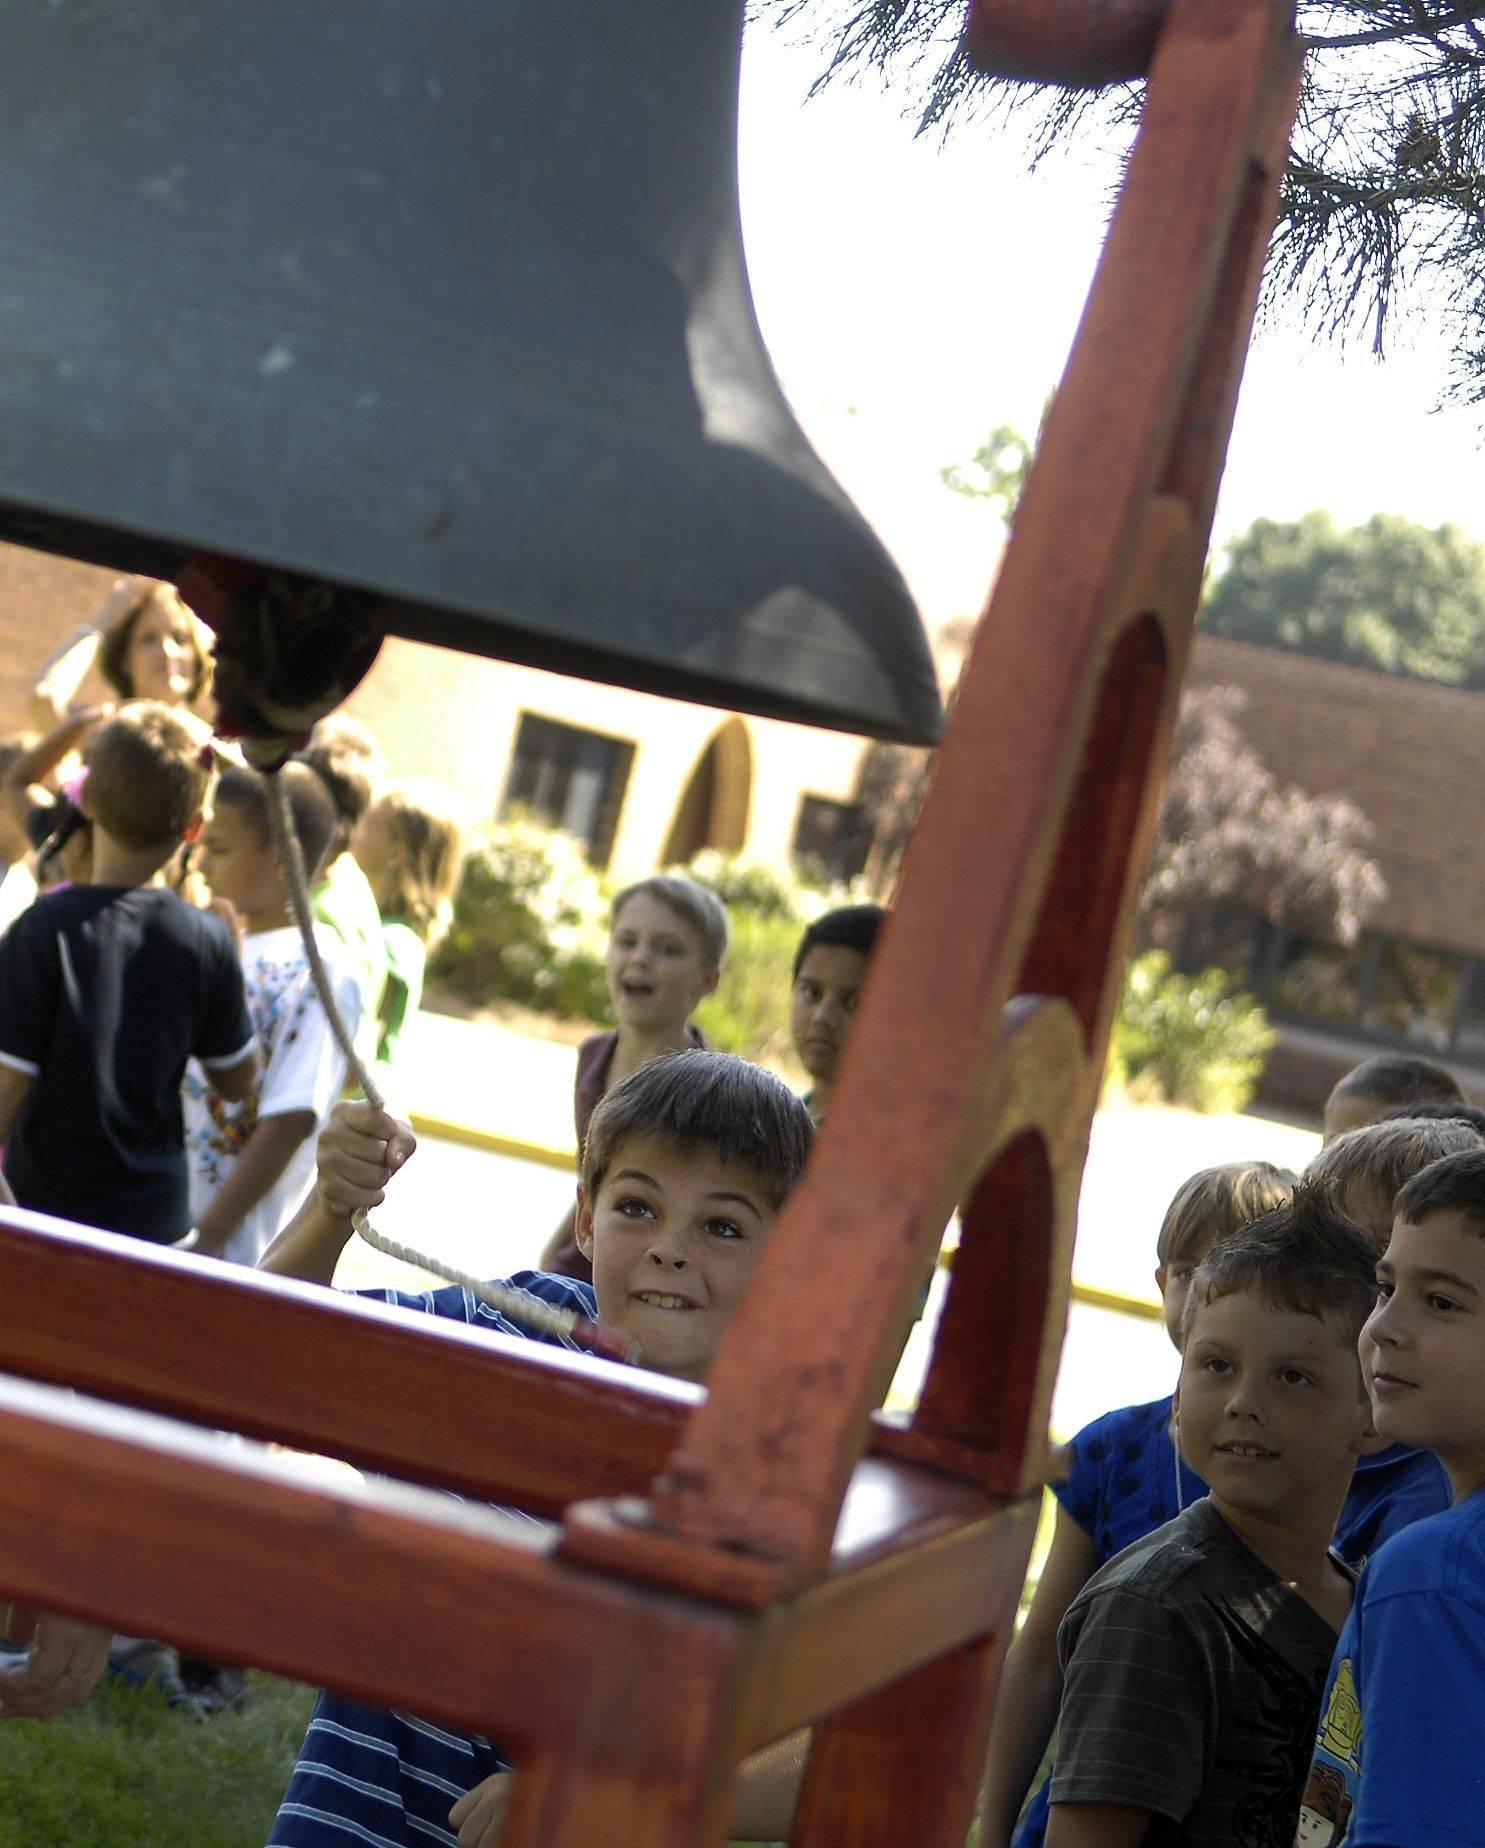 Third-grader Matthew Franzen gets his shot to ring the bell for the first day of school Wednesday at Louise White Elementary in Batavia. All 497 students got a chance to ring the bell, which dates to the 1890s.